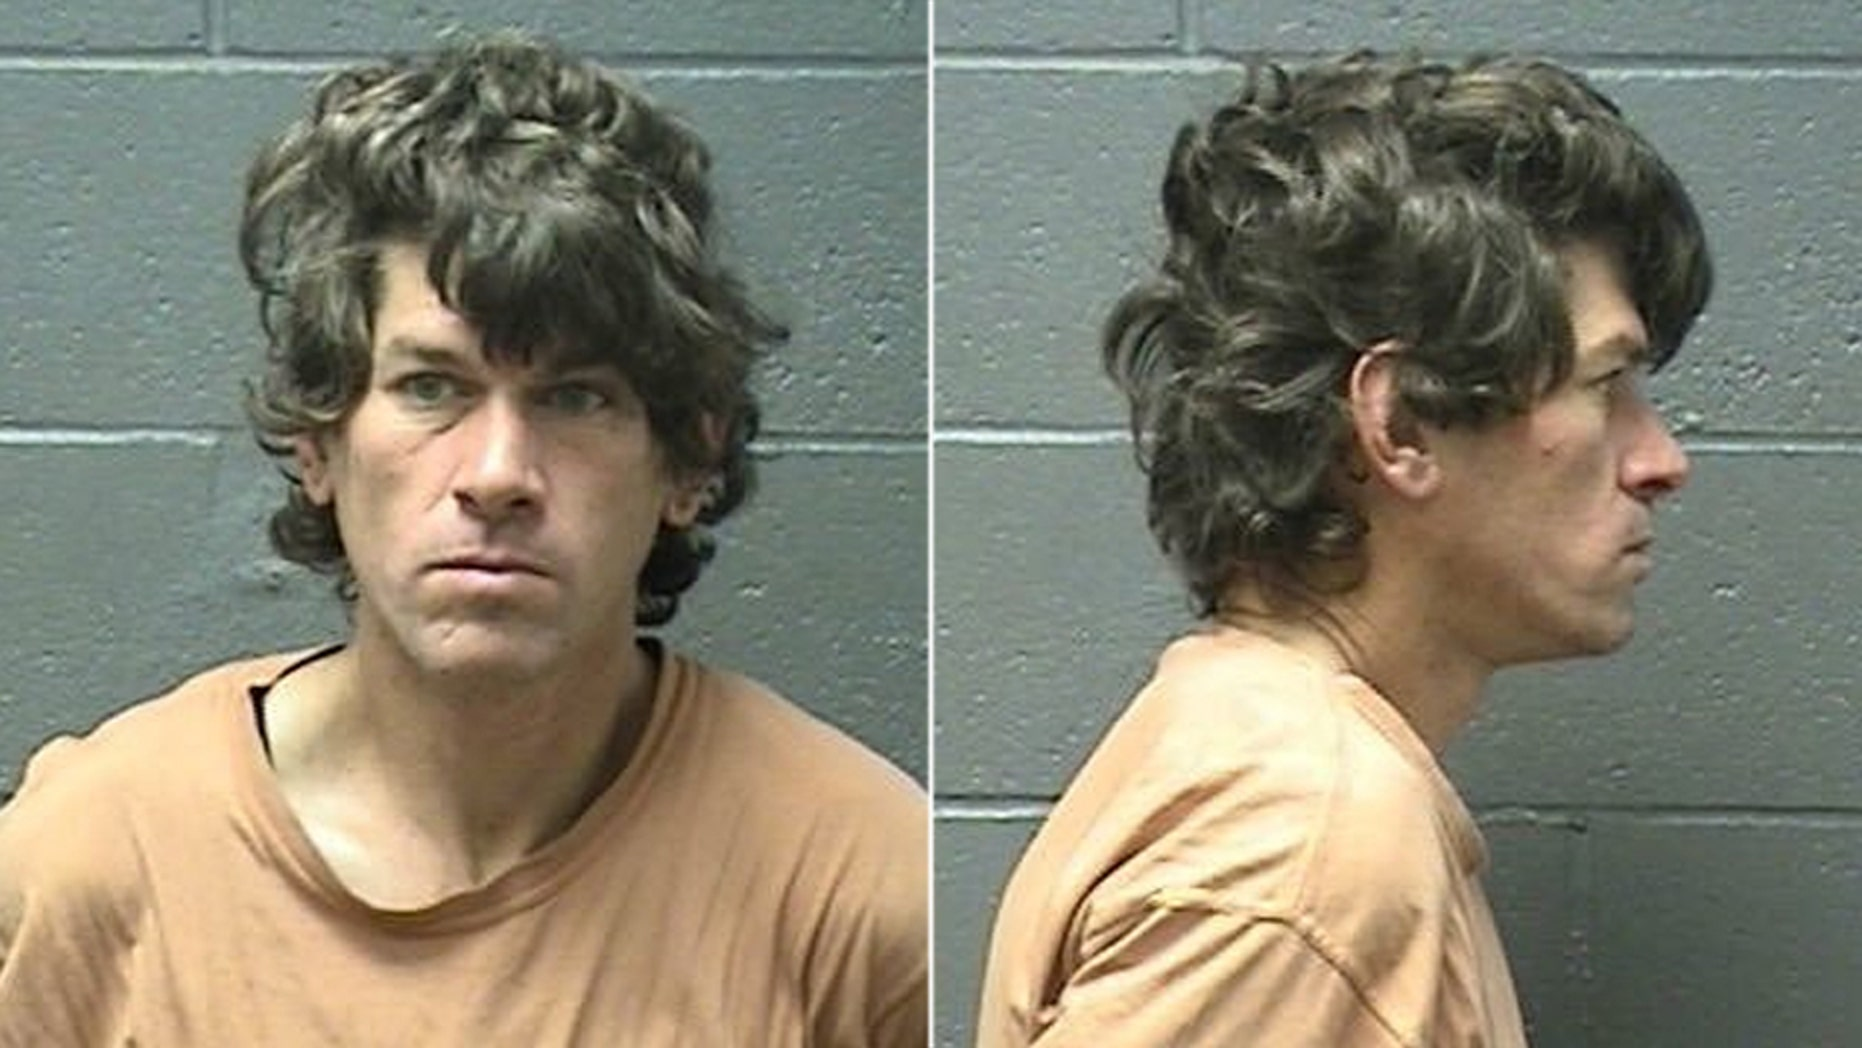 John Crain is facing theft, assault and hate crime charges after the incident at a 7-Eleven.